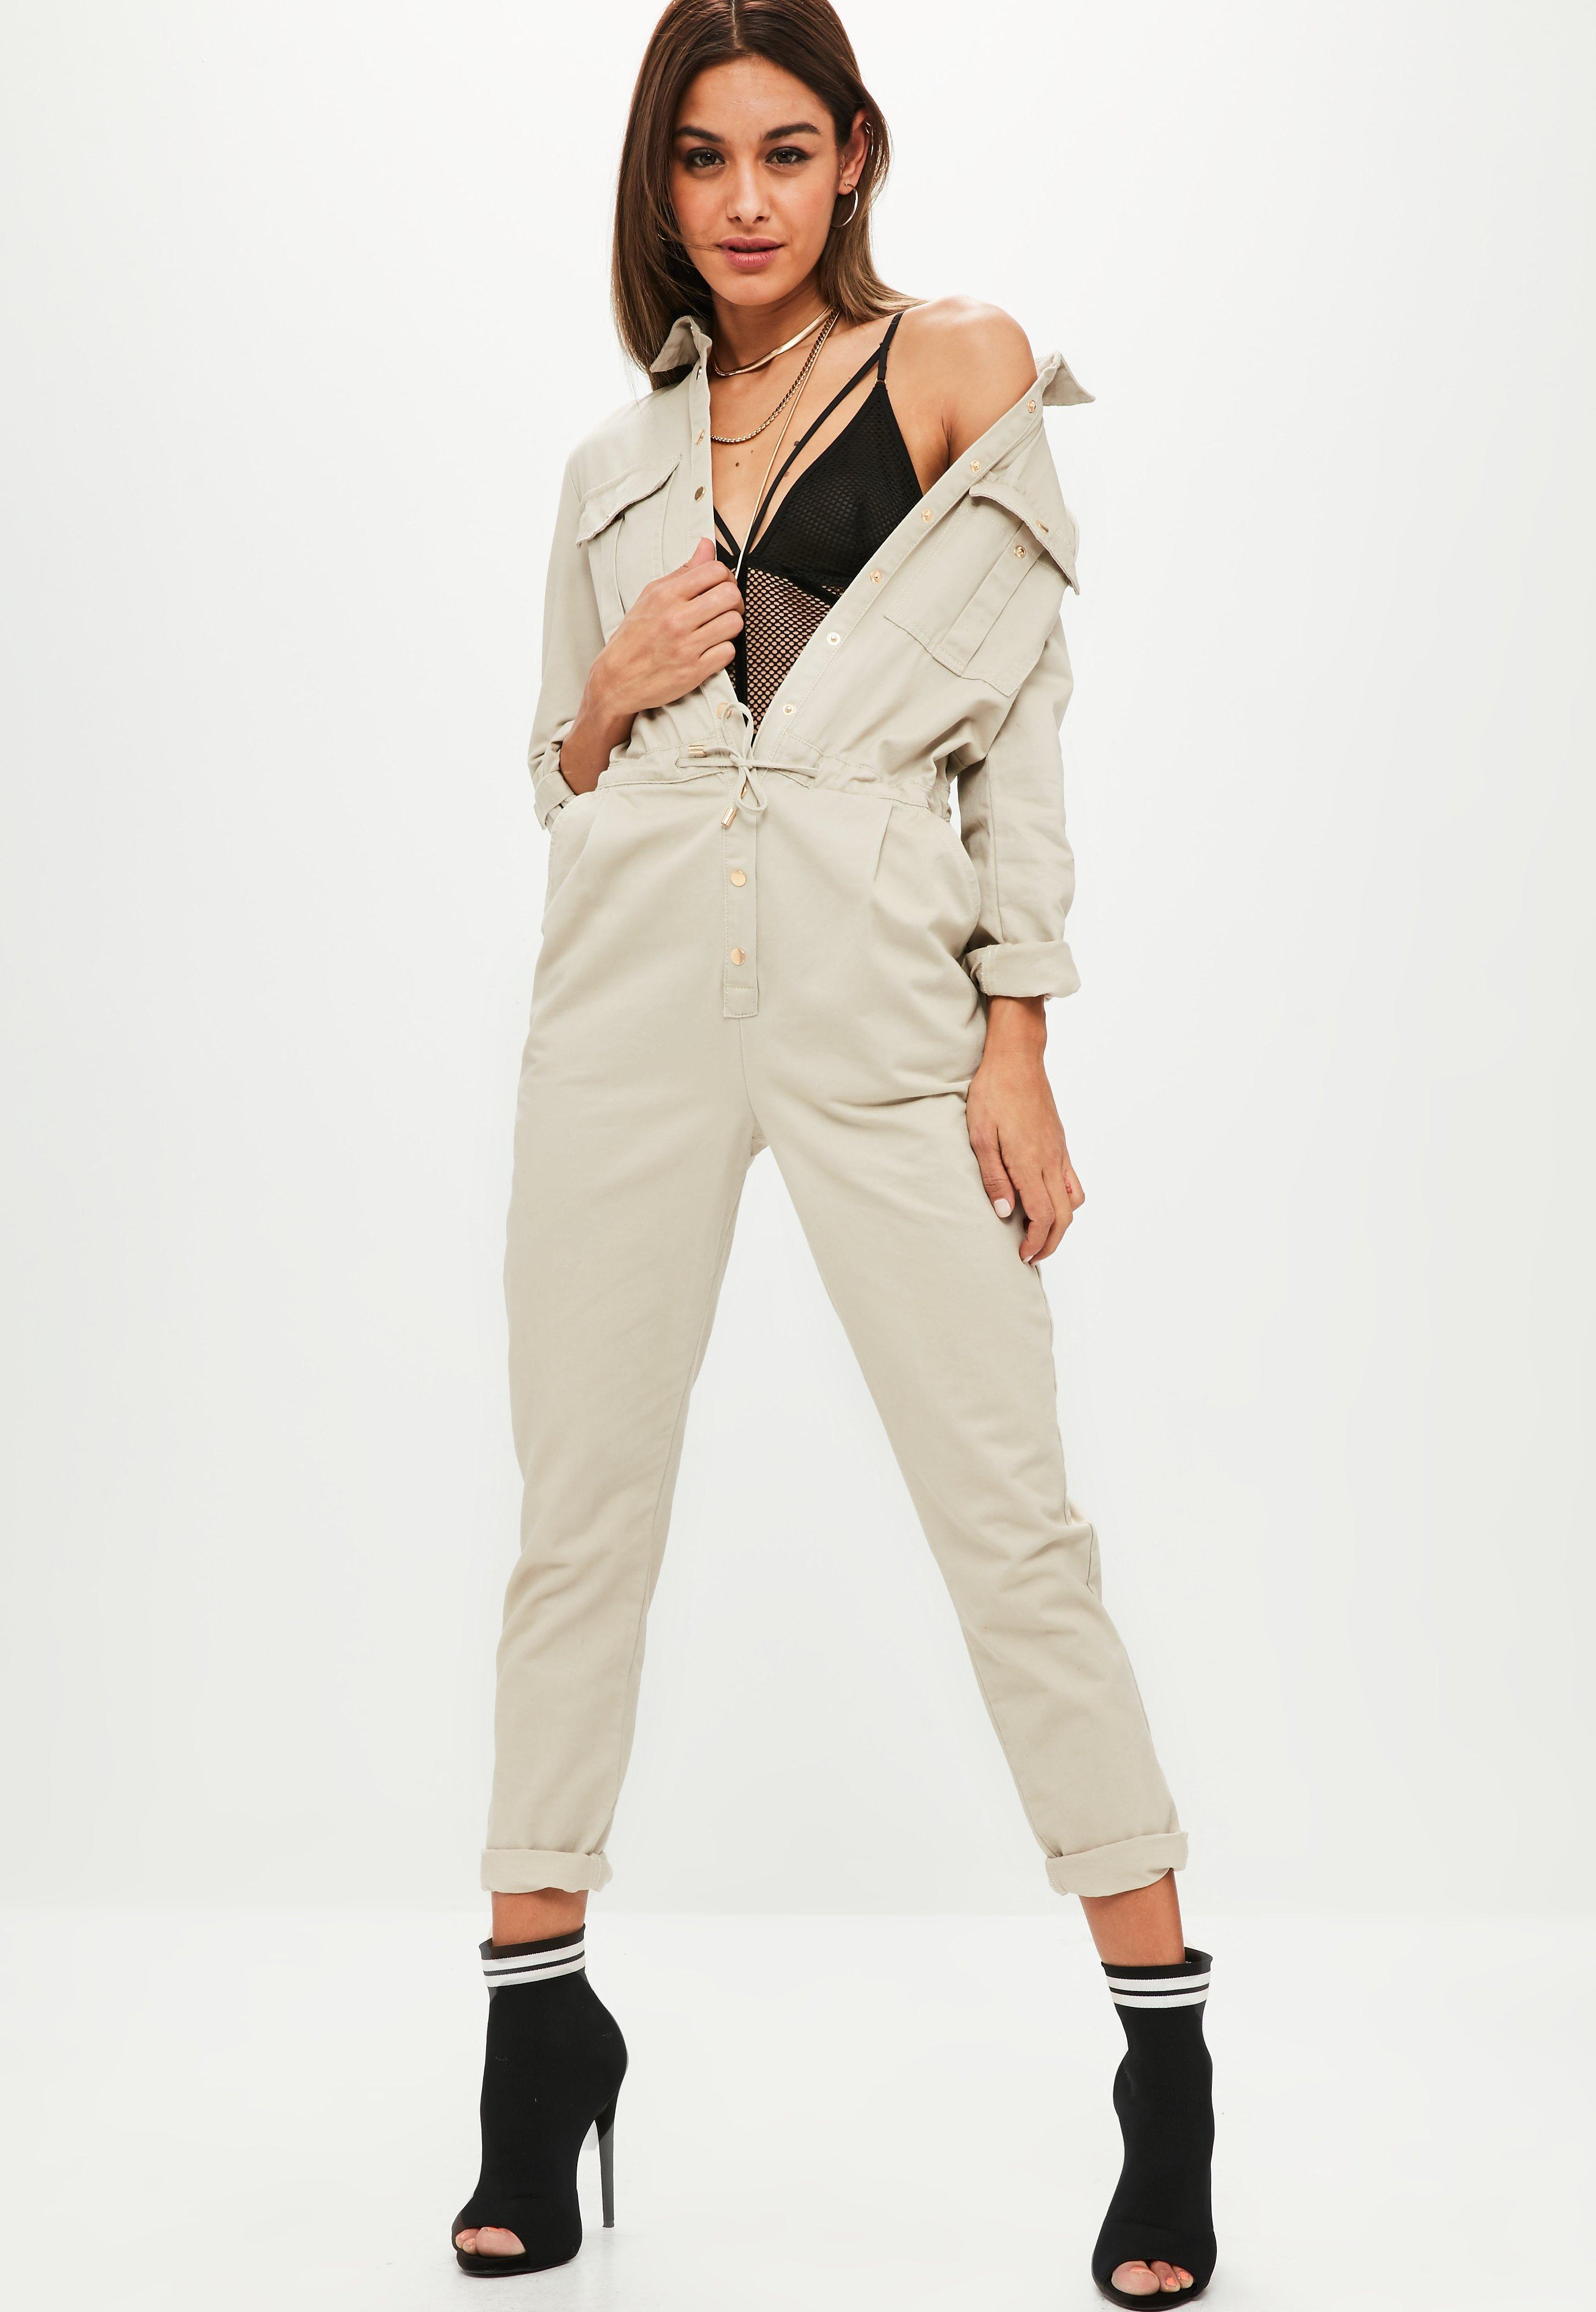 036d86a057a Missguided Cream Utility Jumpsuit in Natural - Lyst